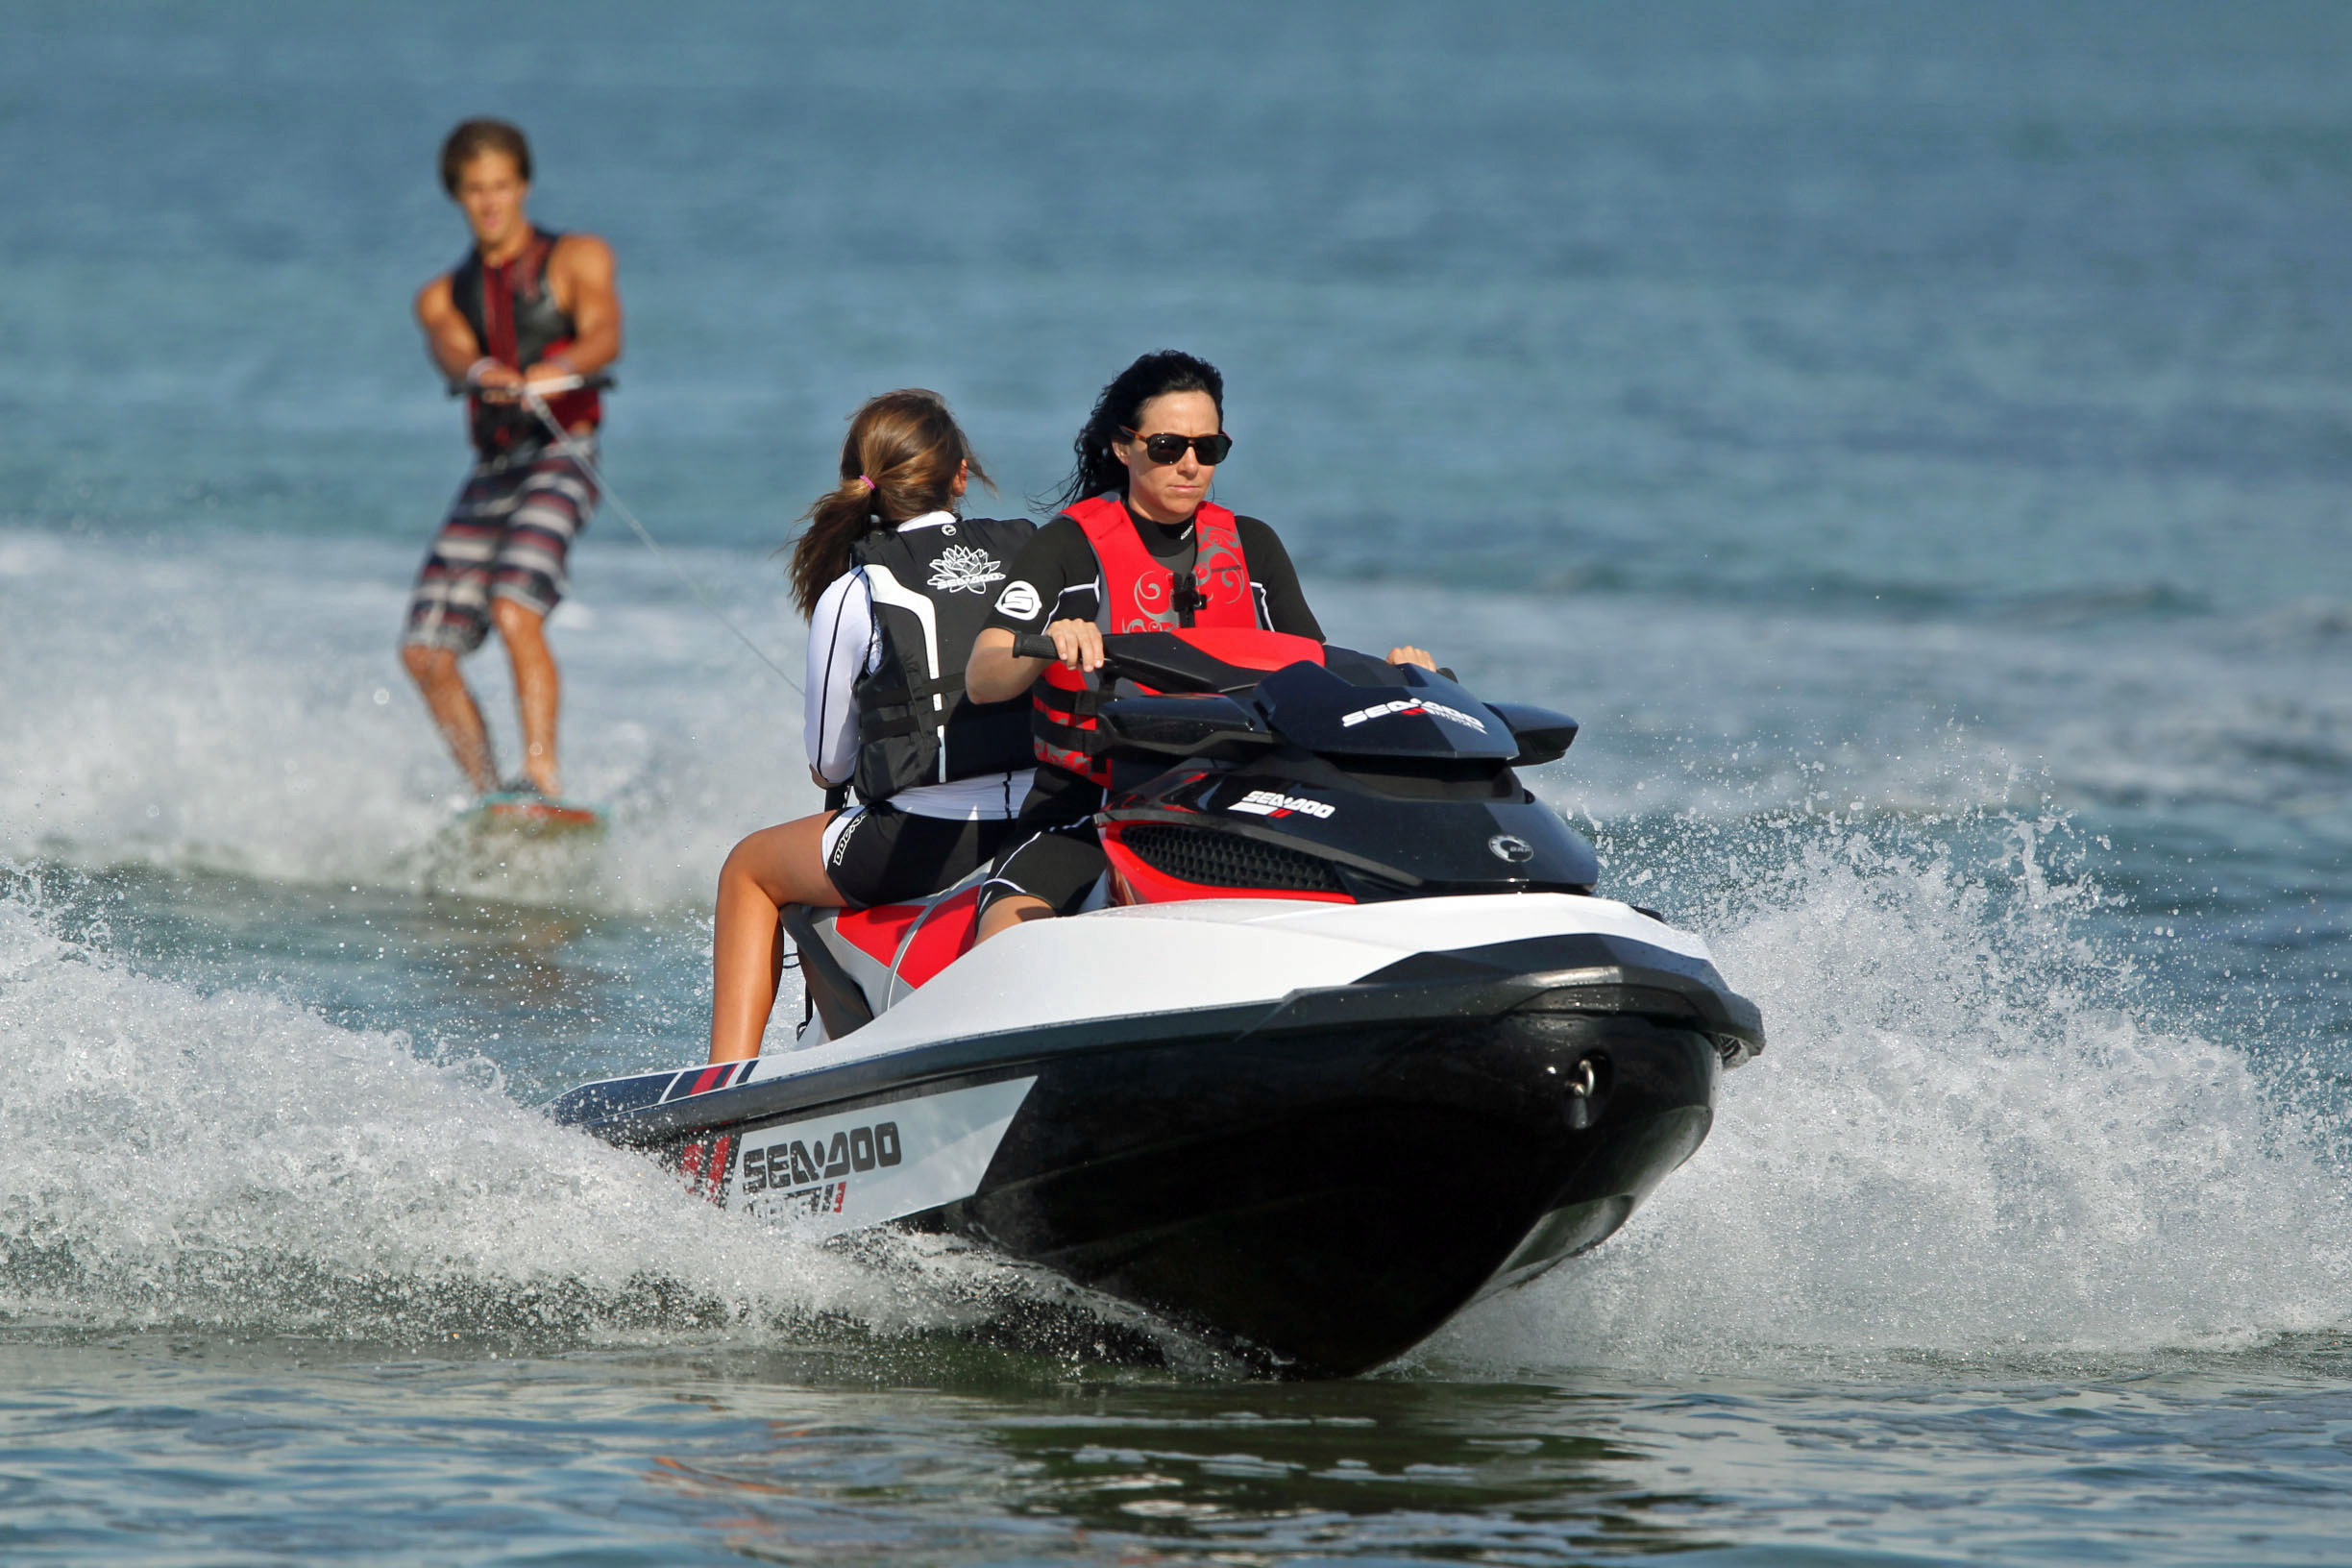 high performance watercraft | Sea-Doo Onboard